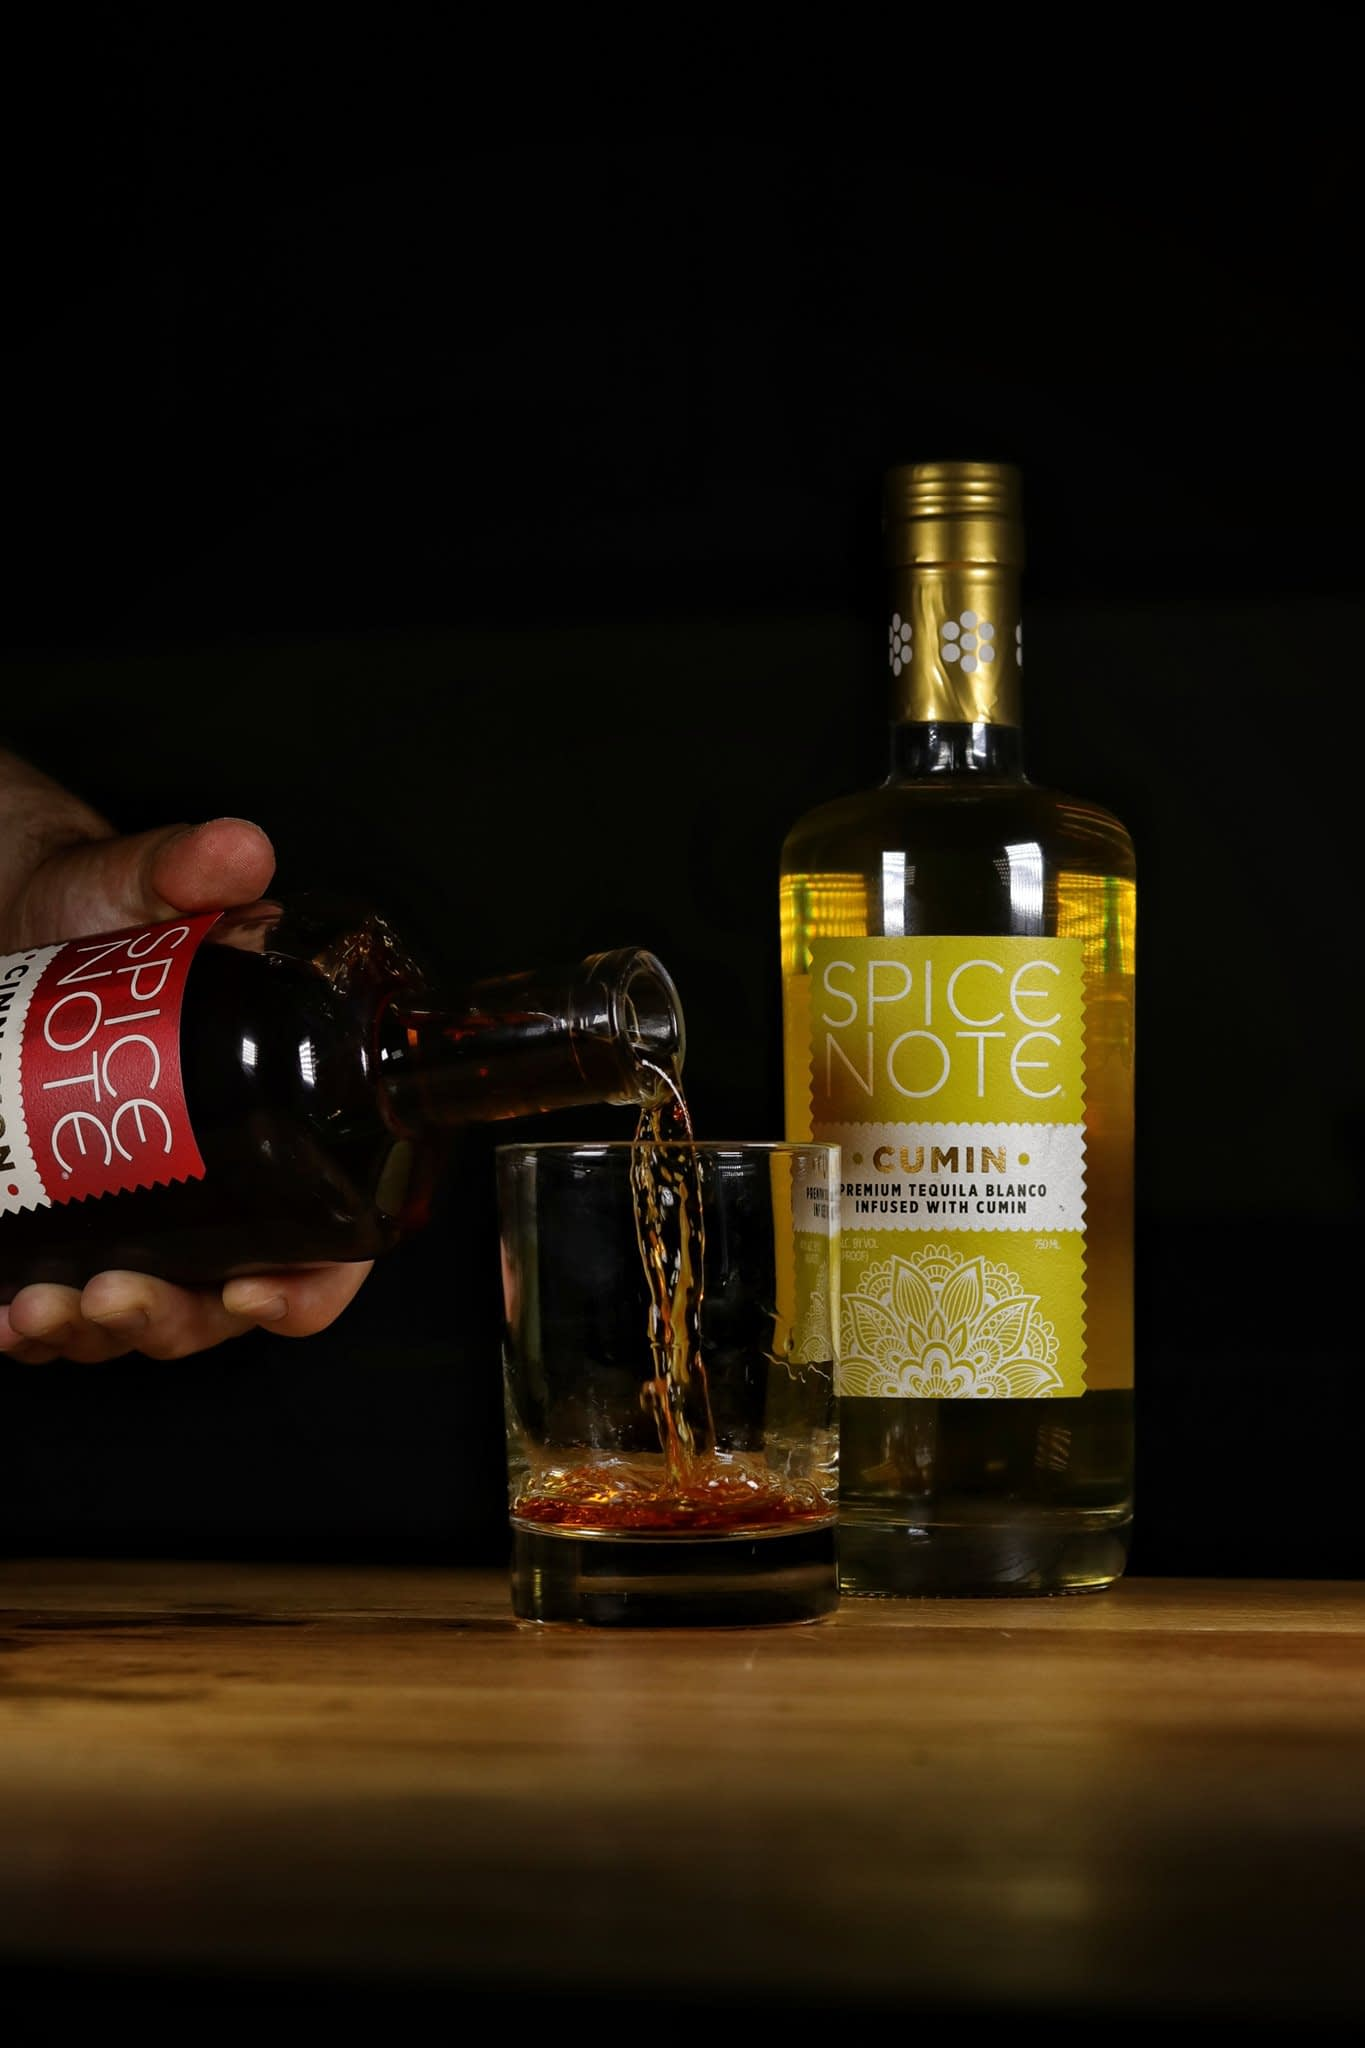 Spice Note Tequila Wins Gold